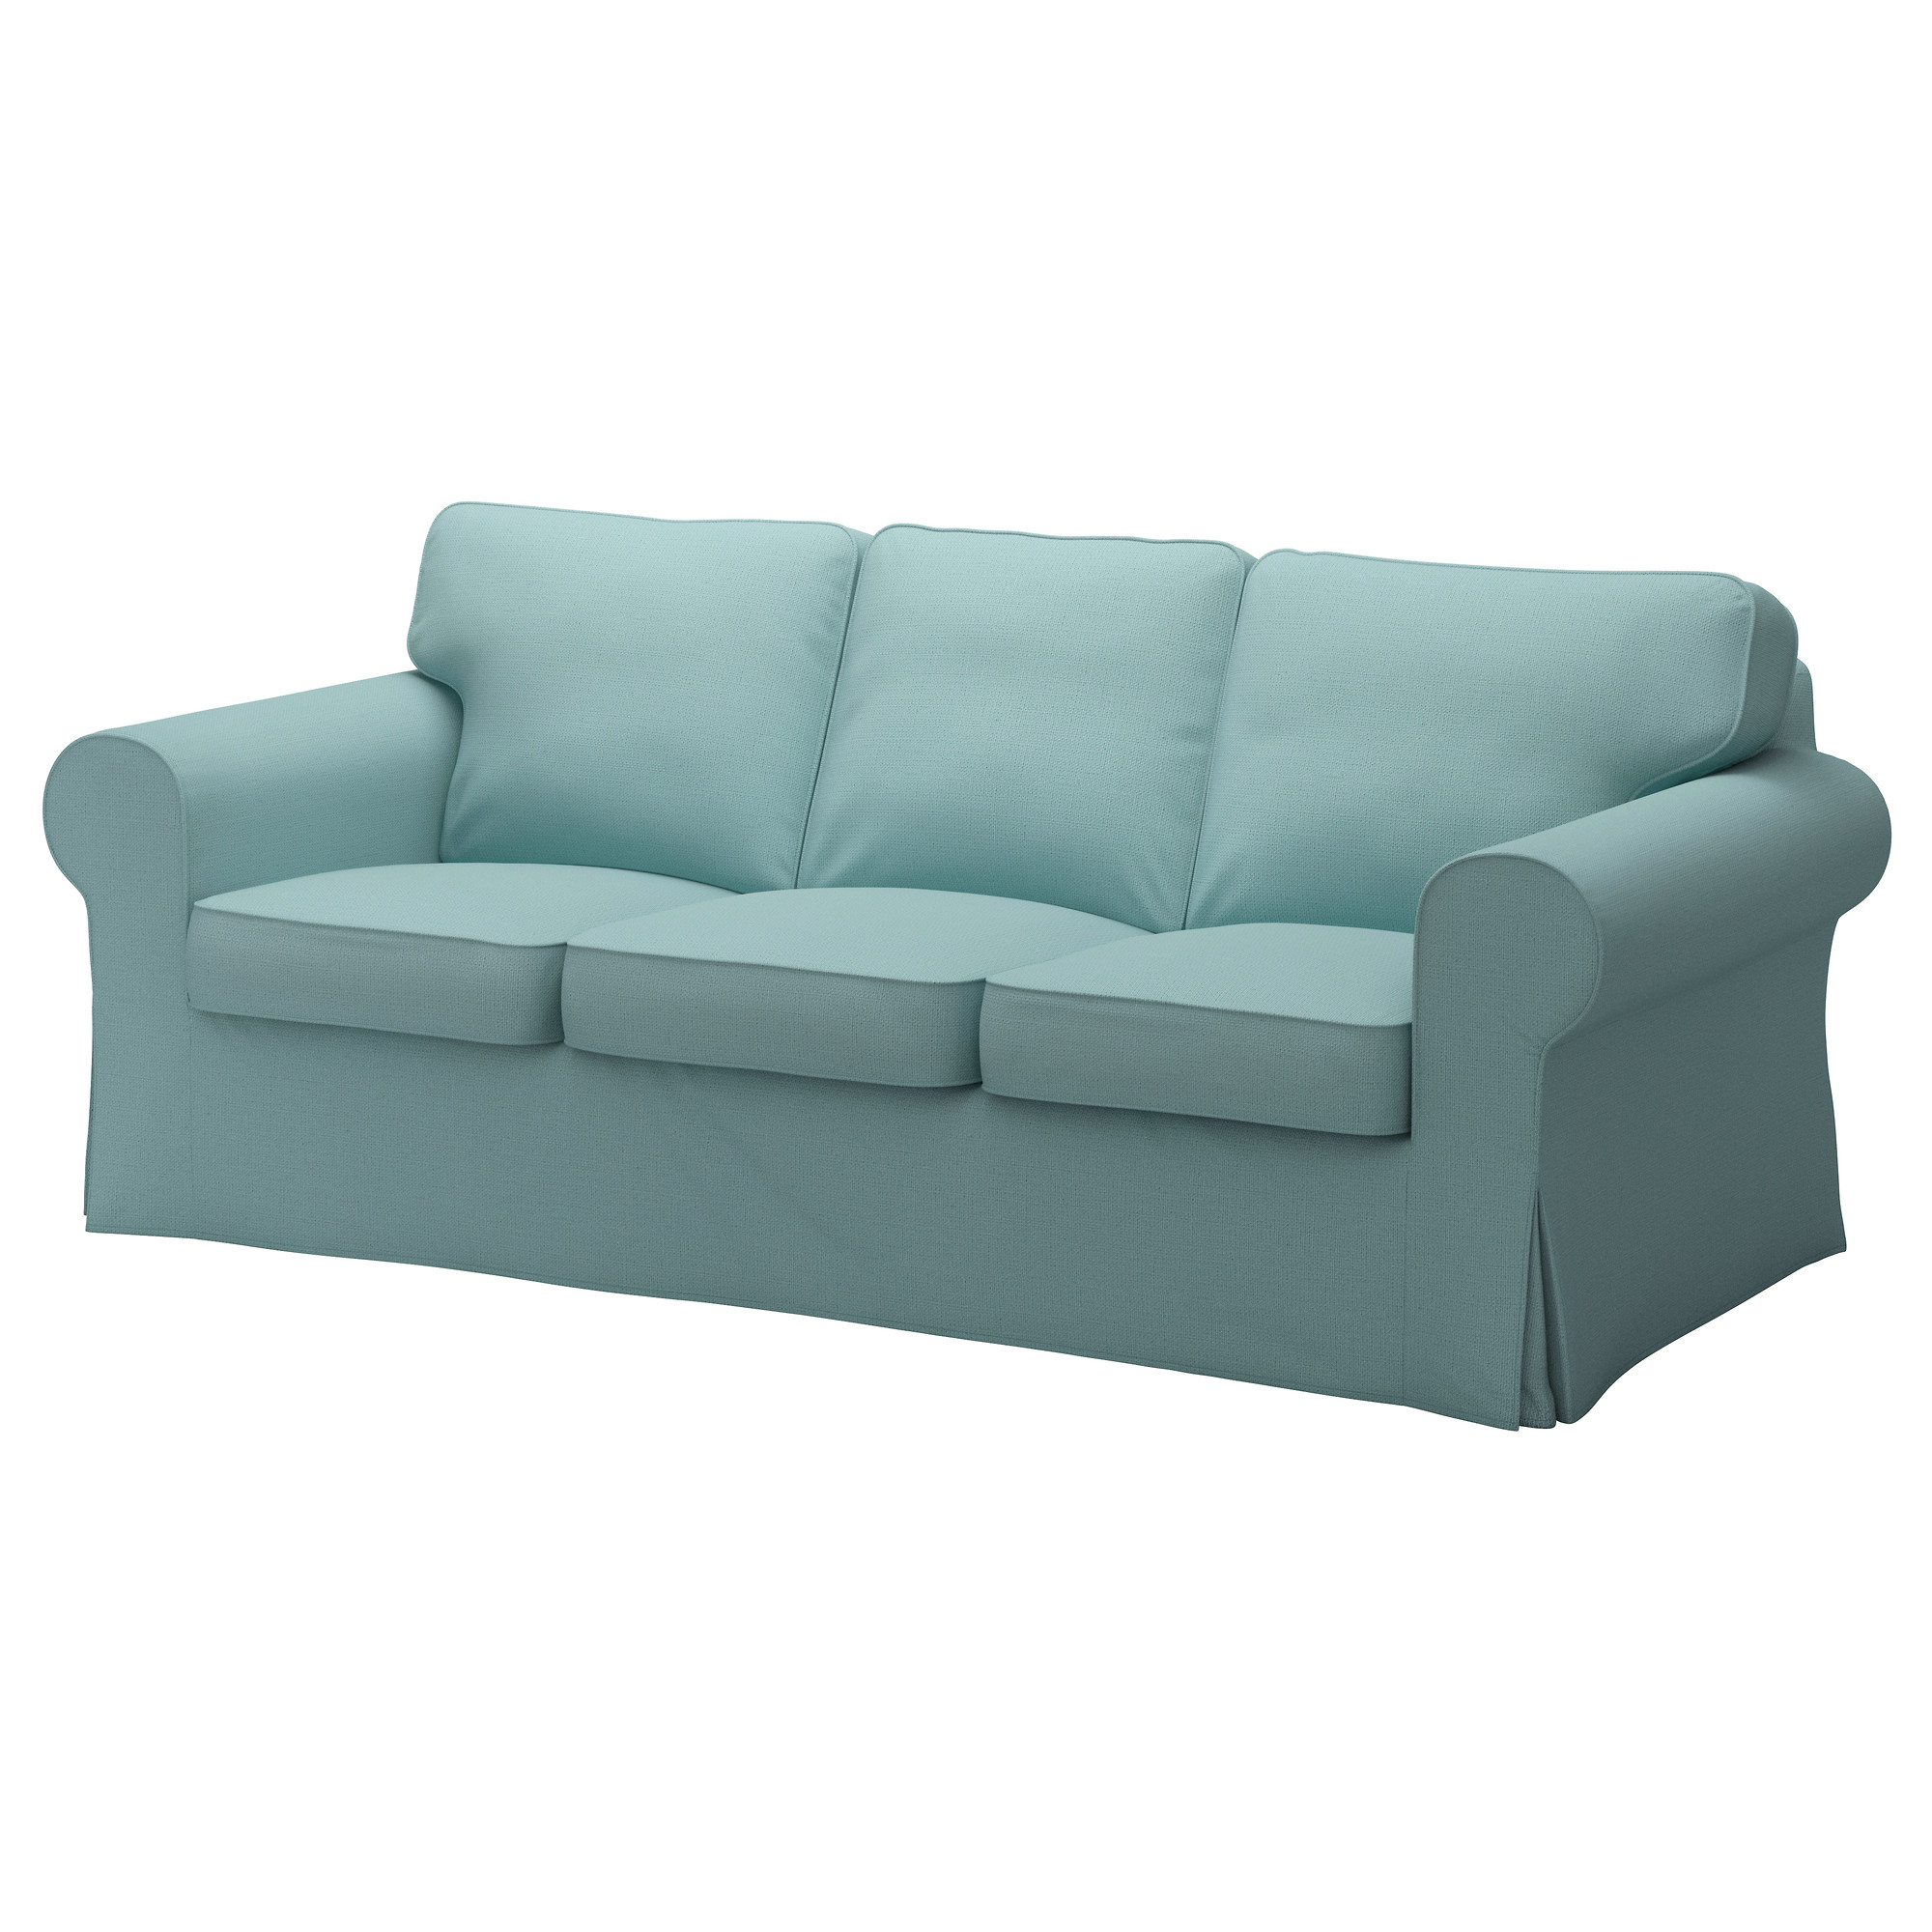 Ektorp Sofa Bed Slipcover